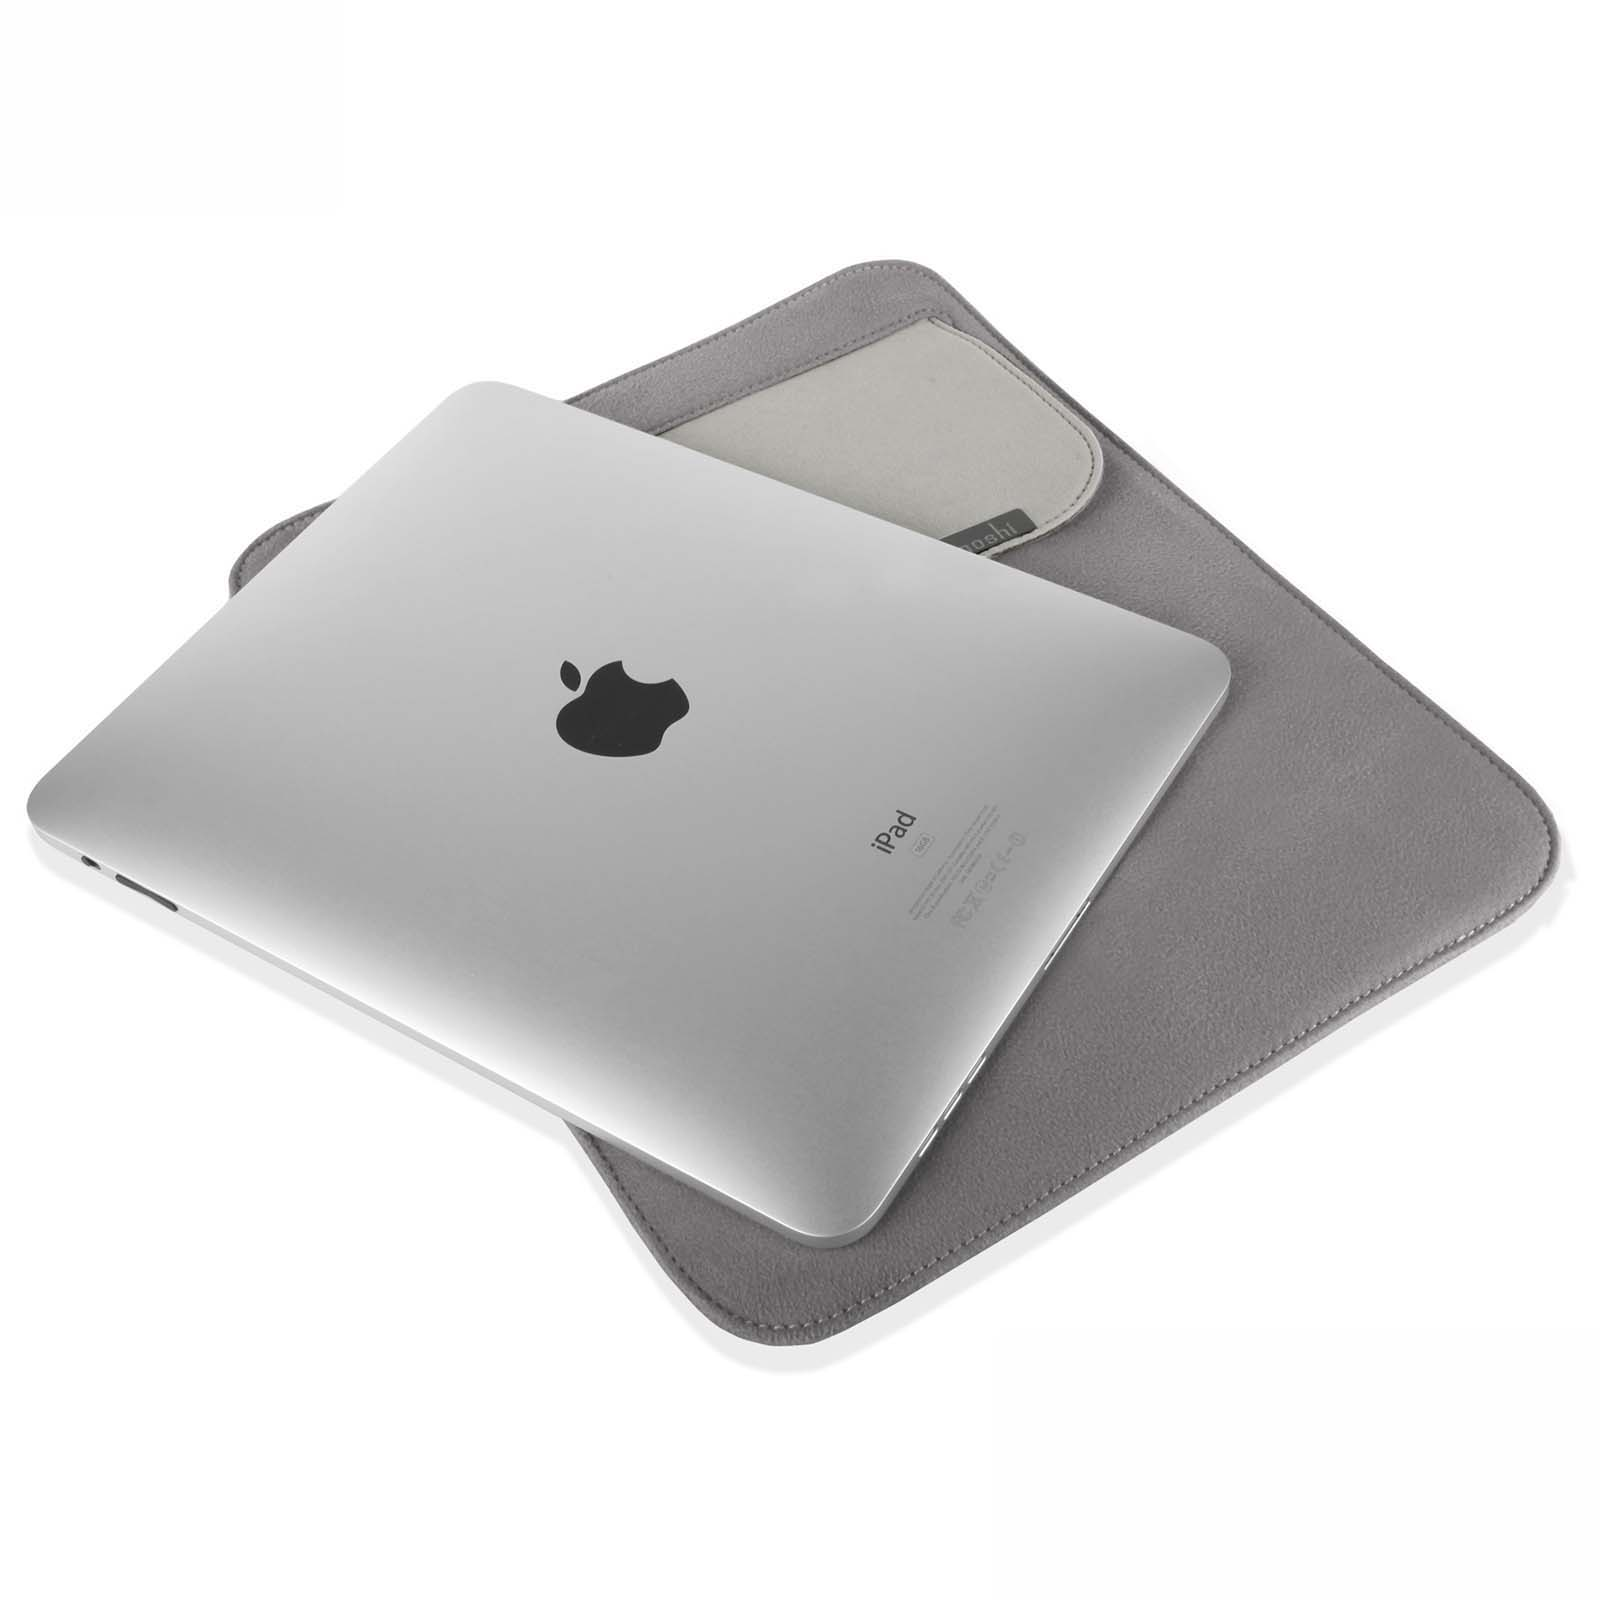 Muse Slim Fit Sleeve for iPad-5-thumbnail